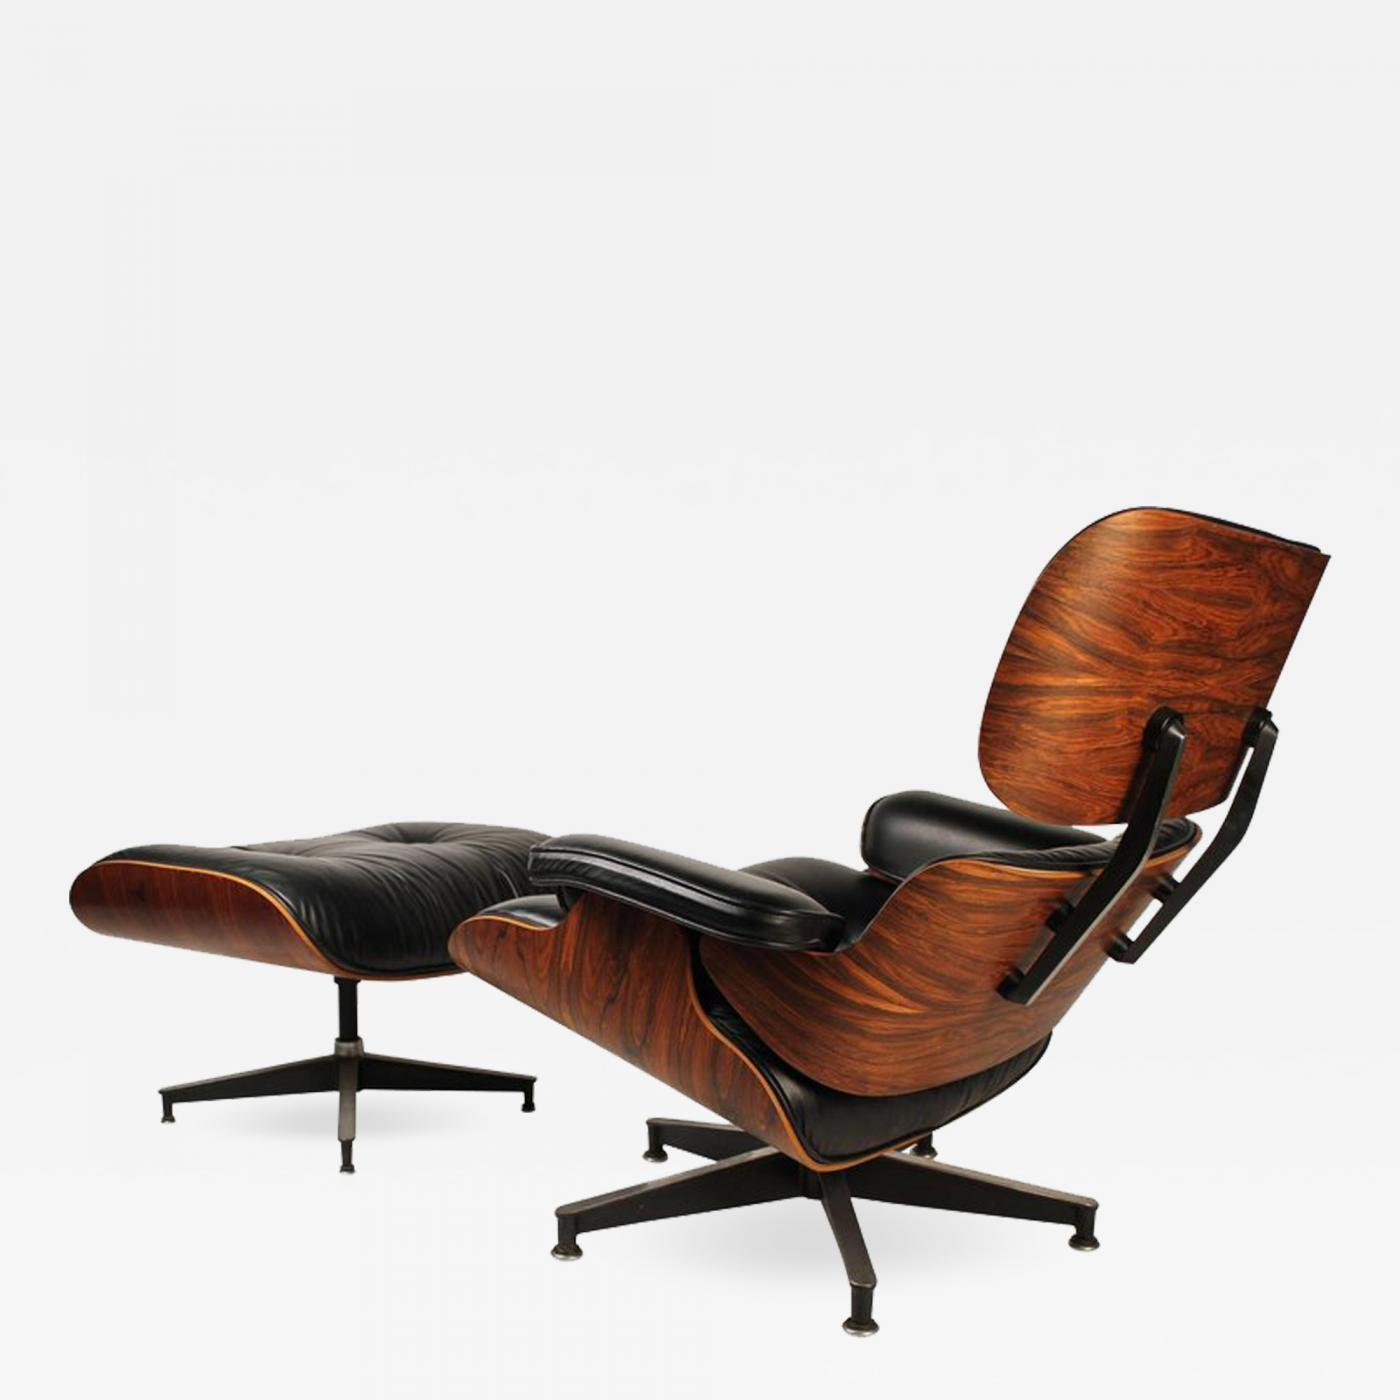 Charles Eames Lounge Chair Charles & Ray Eames - Vintage Rosewood Charles Eames 670 Lounge Chair & 671 Ottoman For Herman Miller